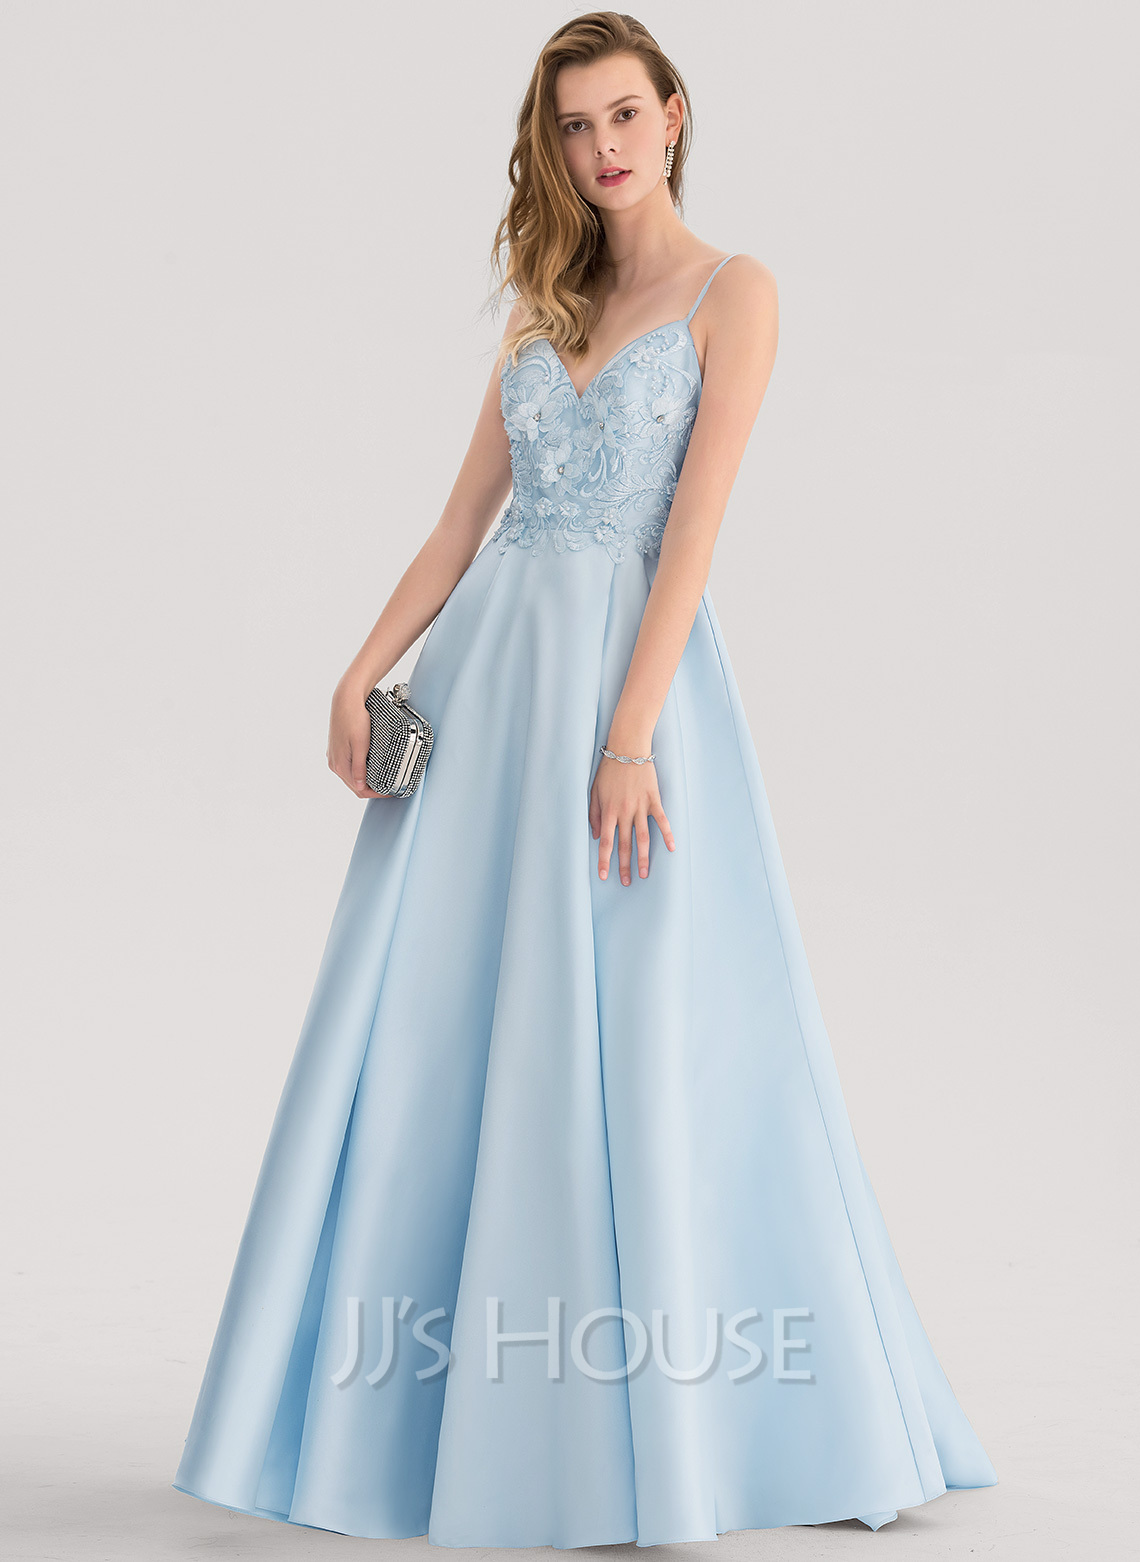 Stores In Miami That Sells Prom Dresses | JJ\'sHouse